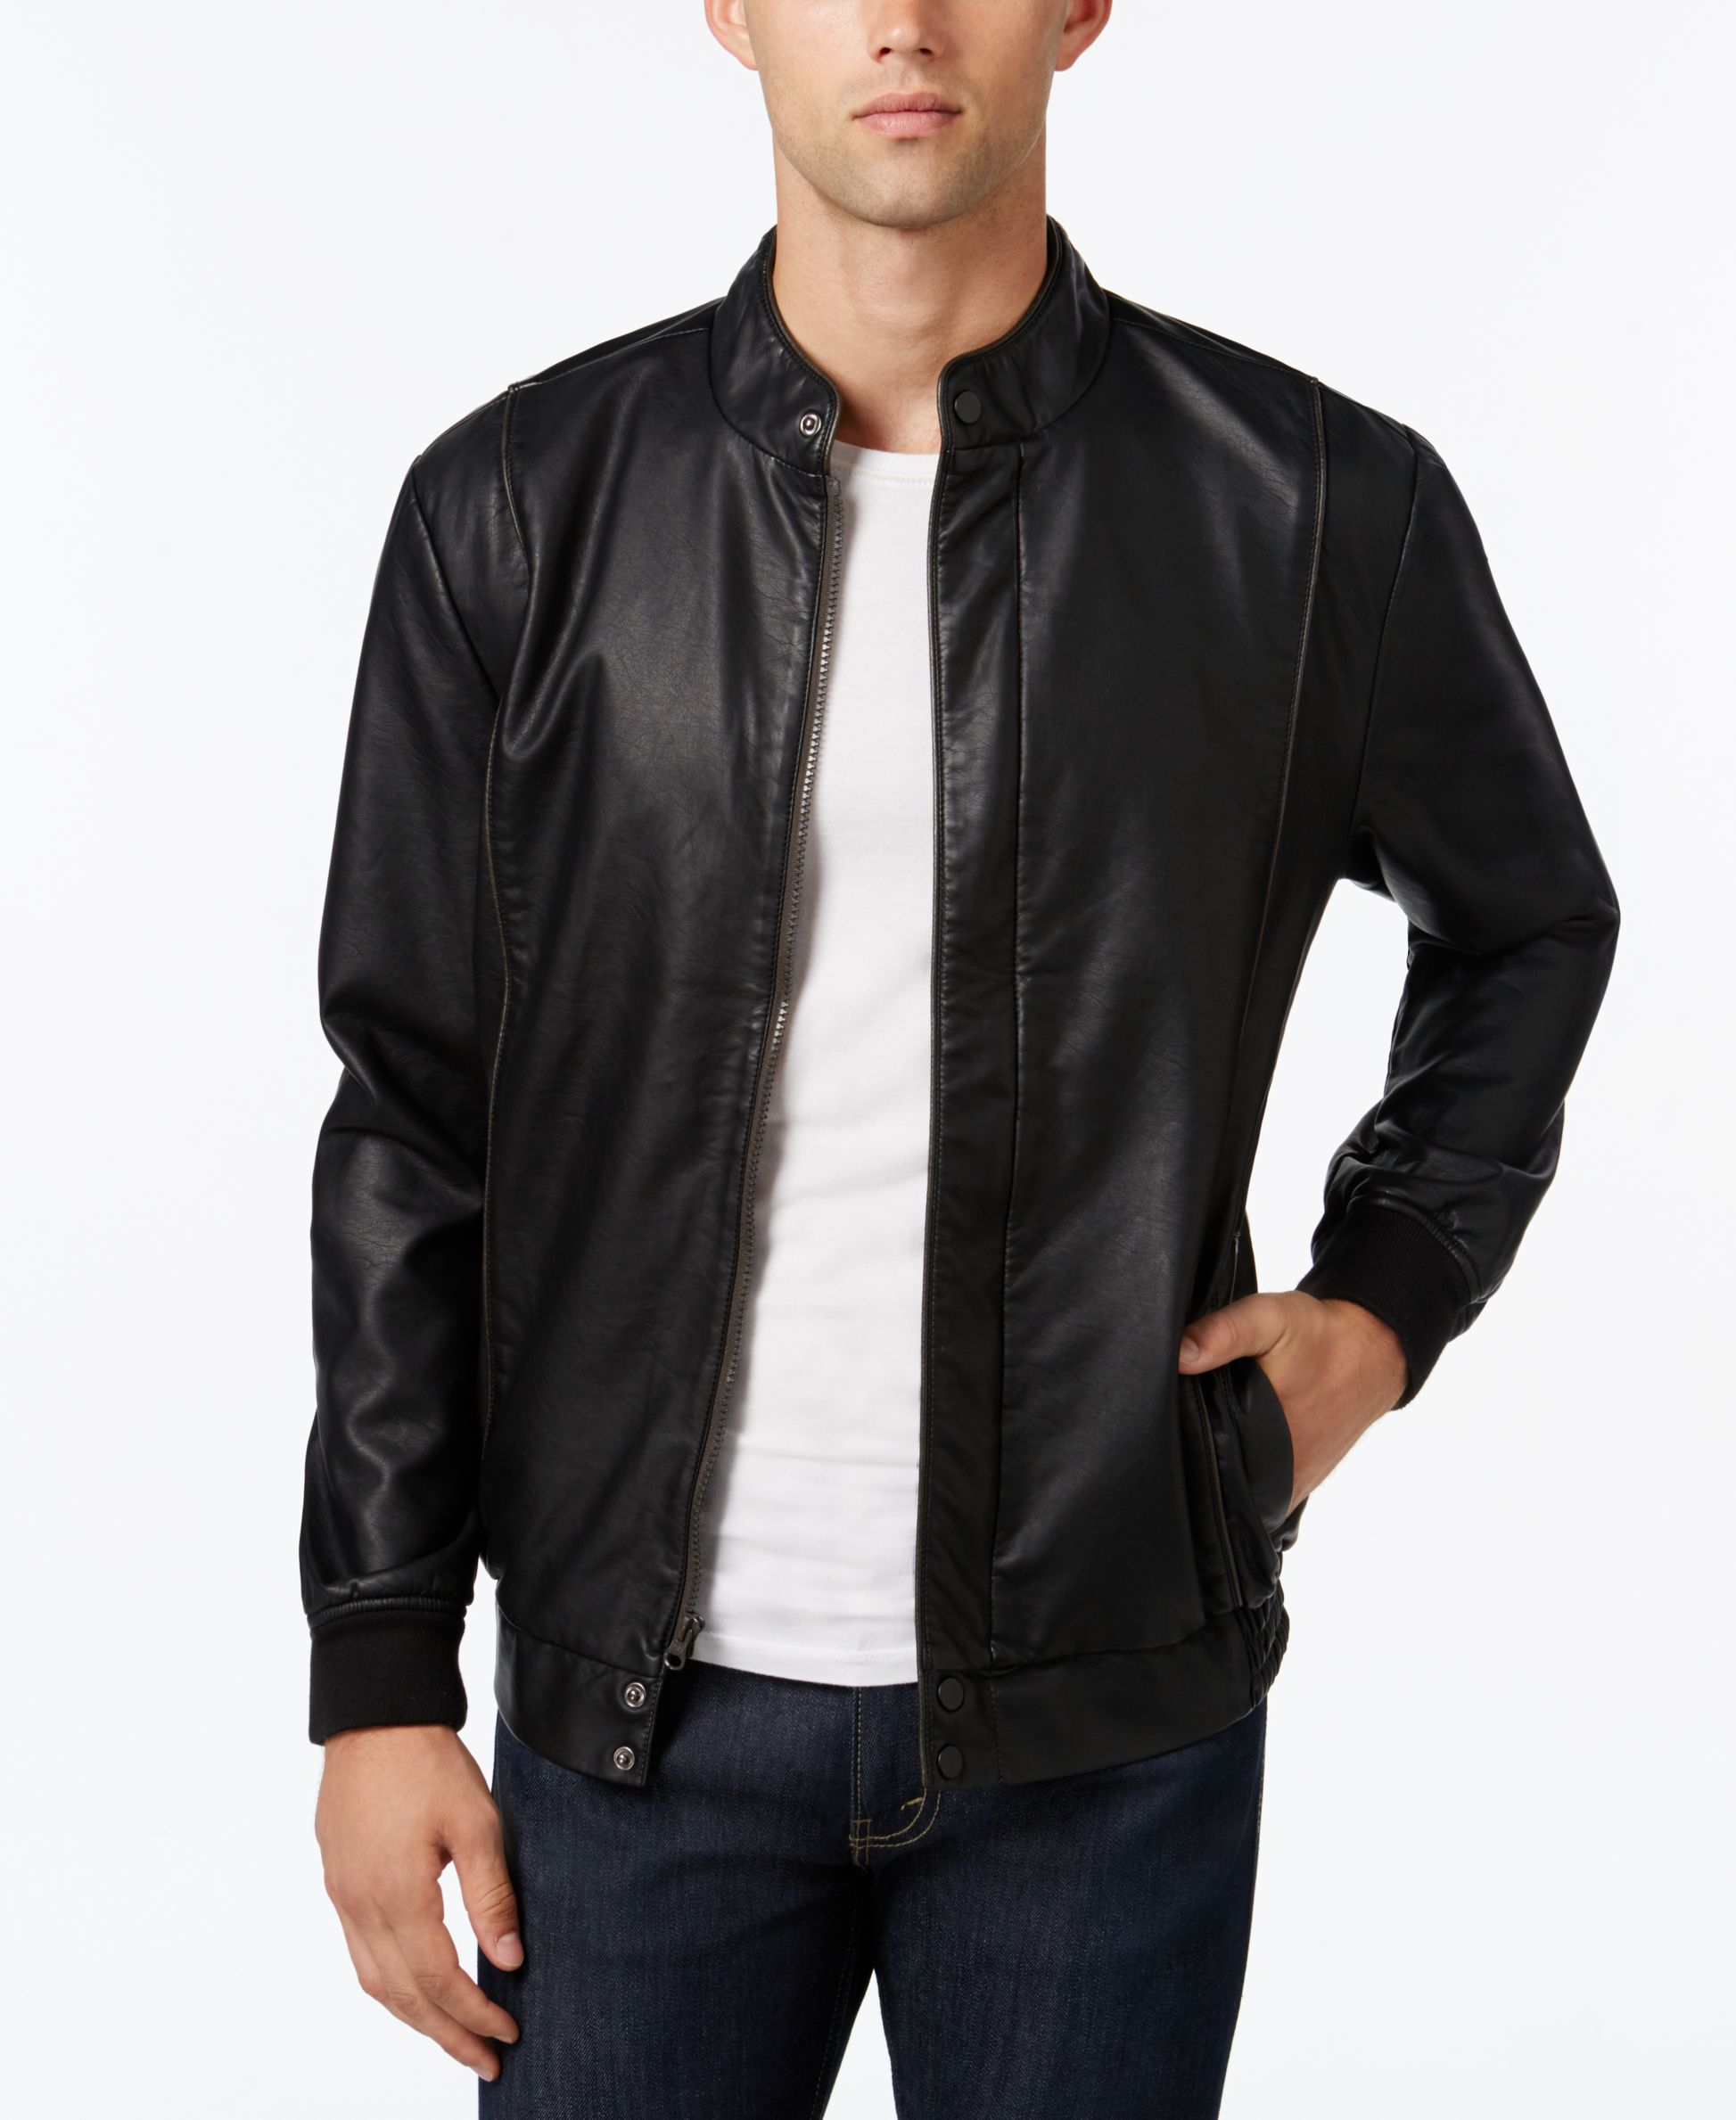 Macys leather jackets for men